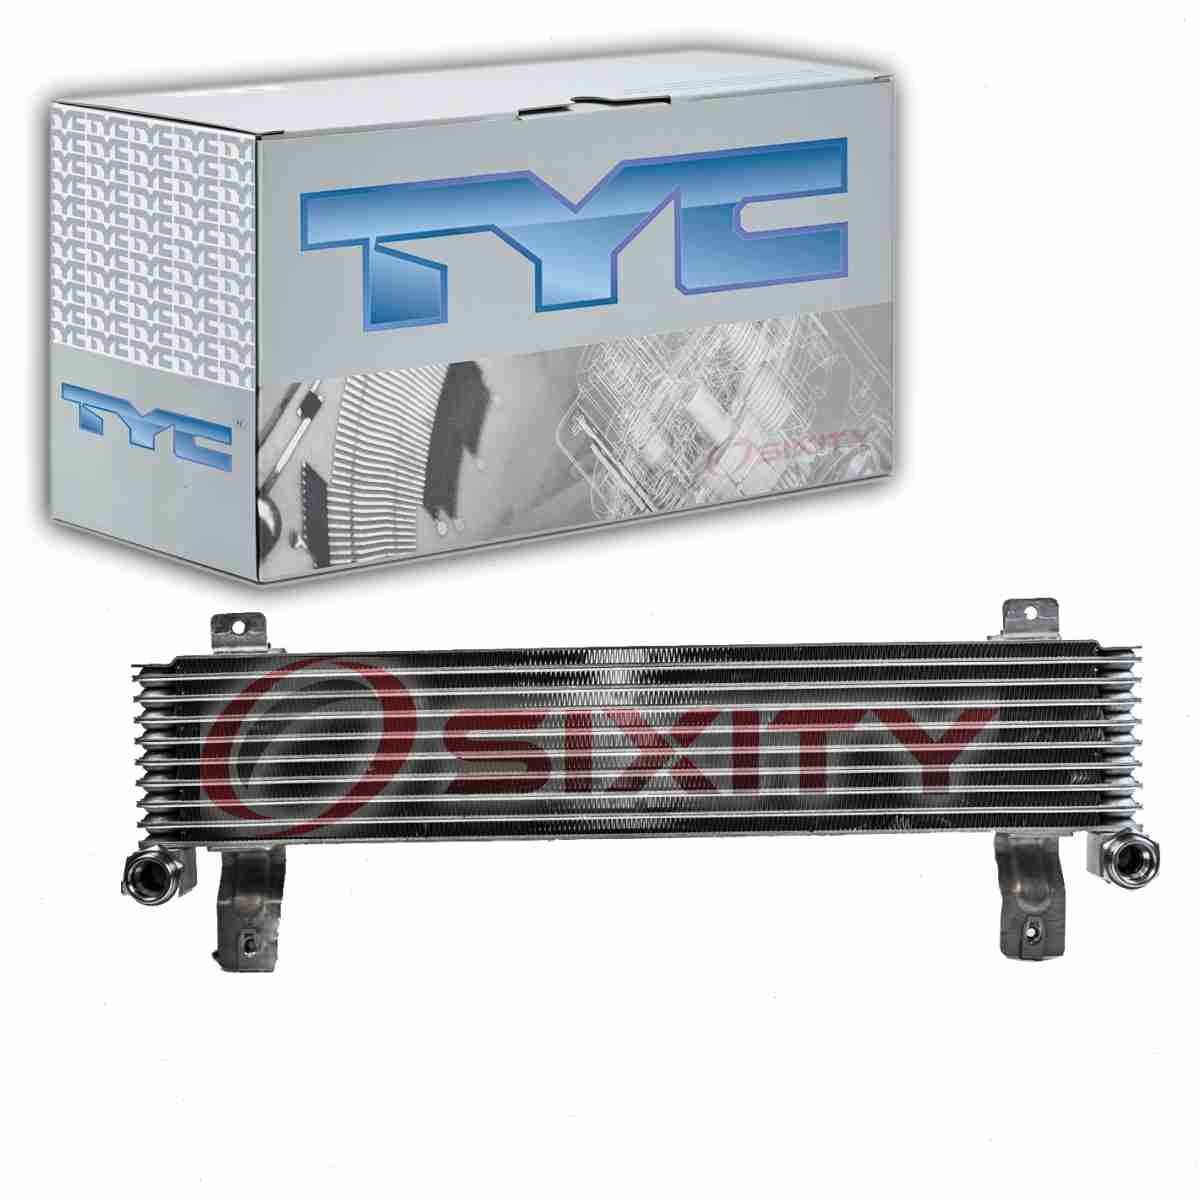 2010 Chevrolet Silverado 3500 Hd Extended Cab Transmission: TYC Auto Trans Oil Cooler For 2007-2010 Chevrolet